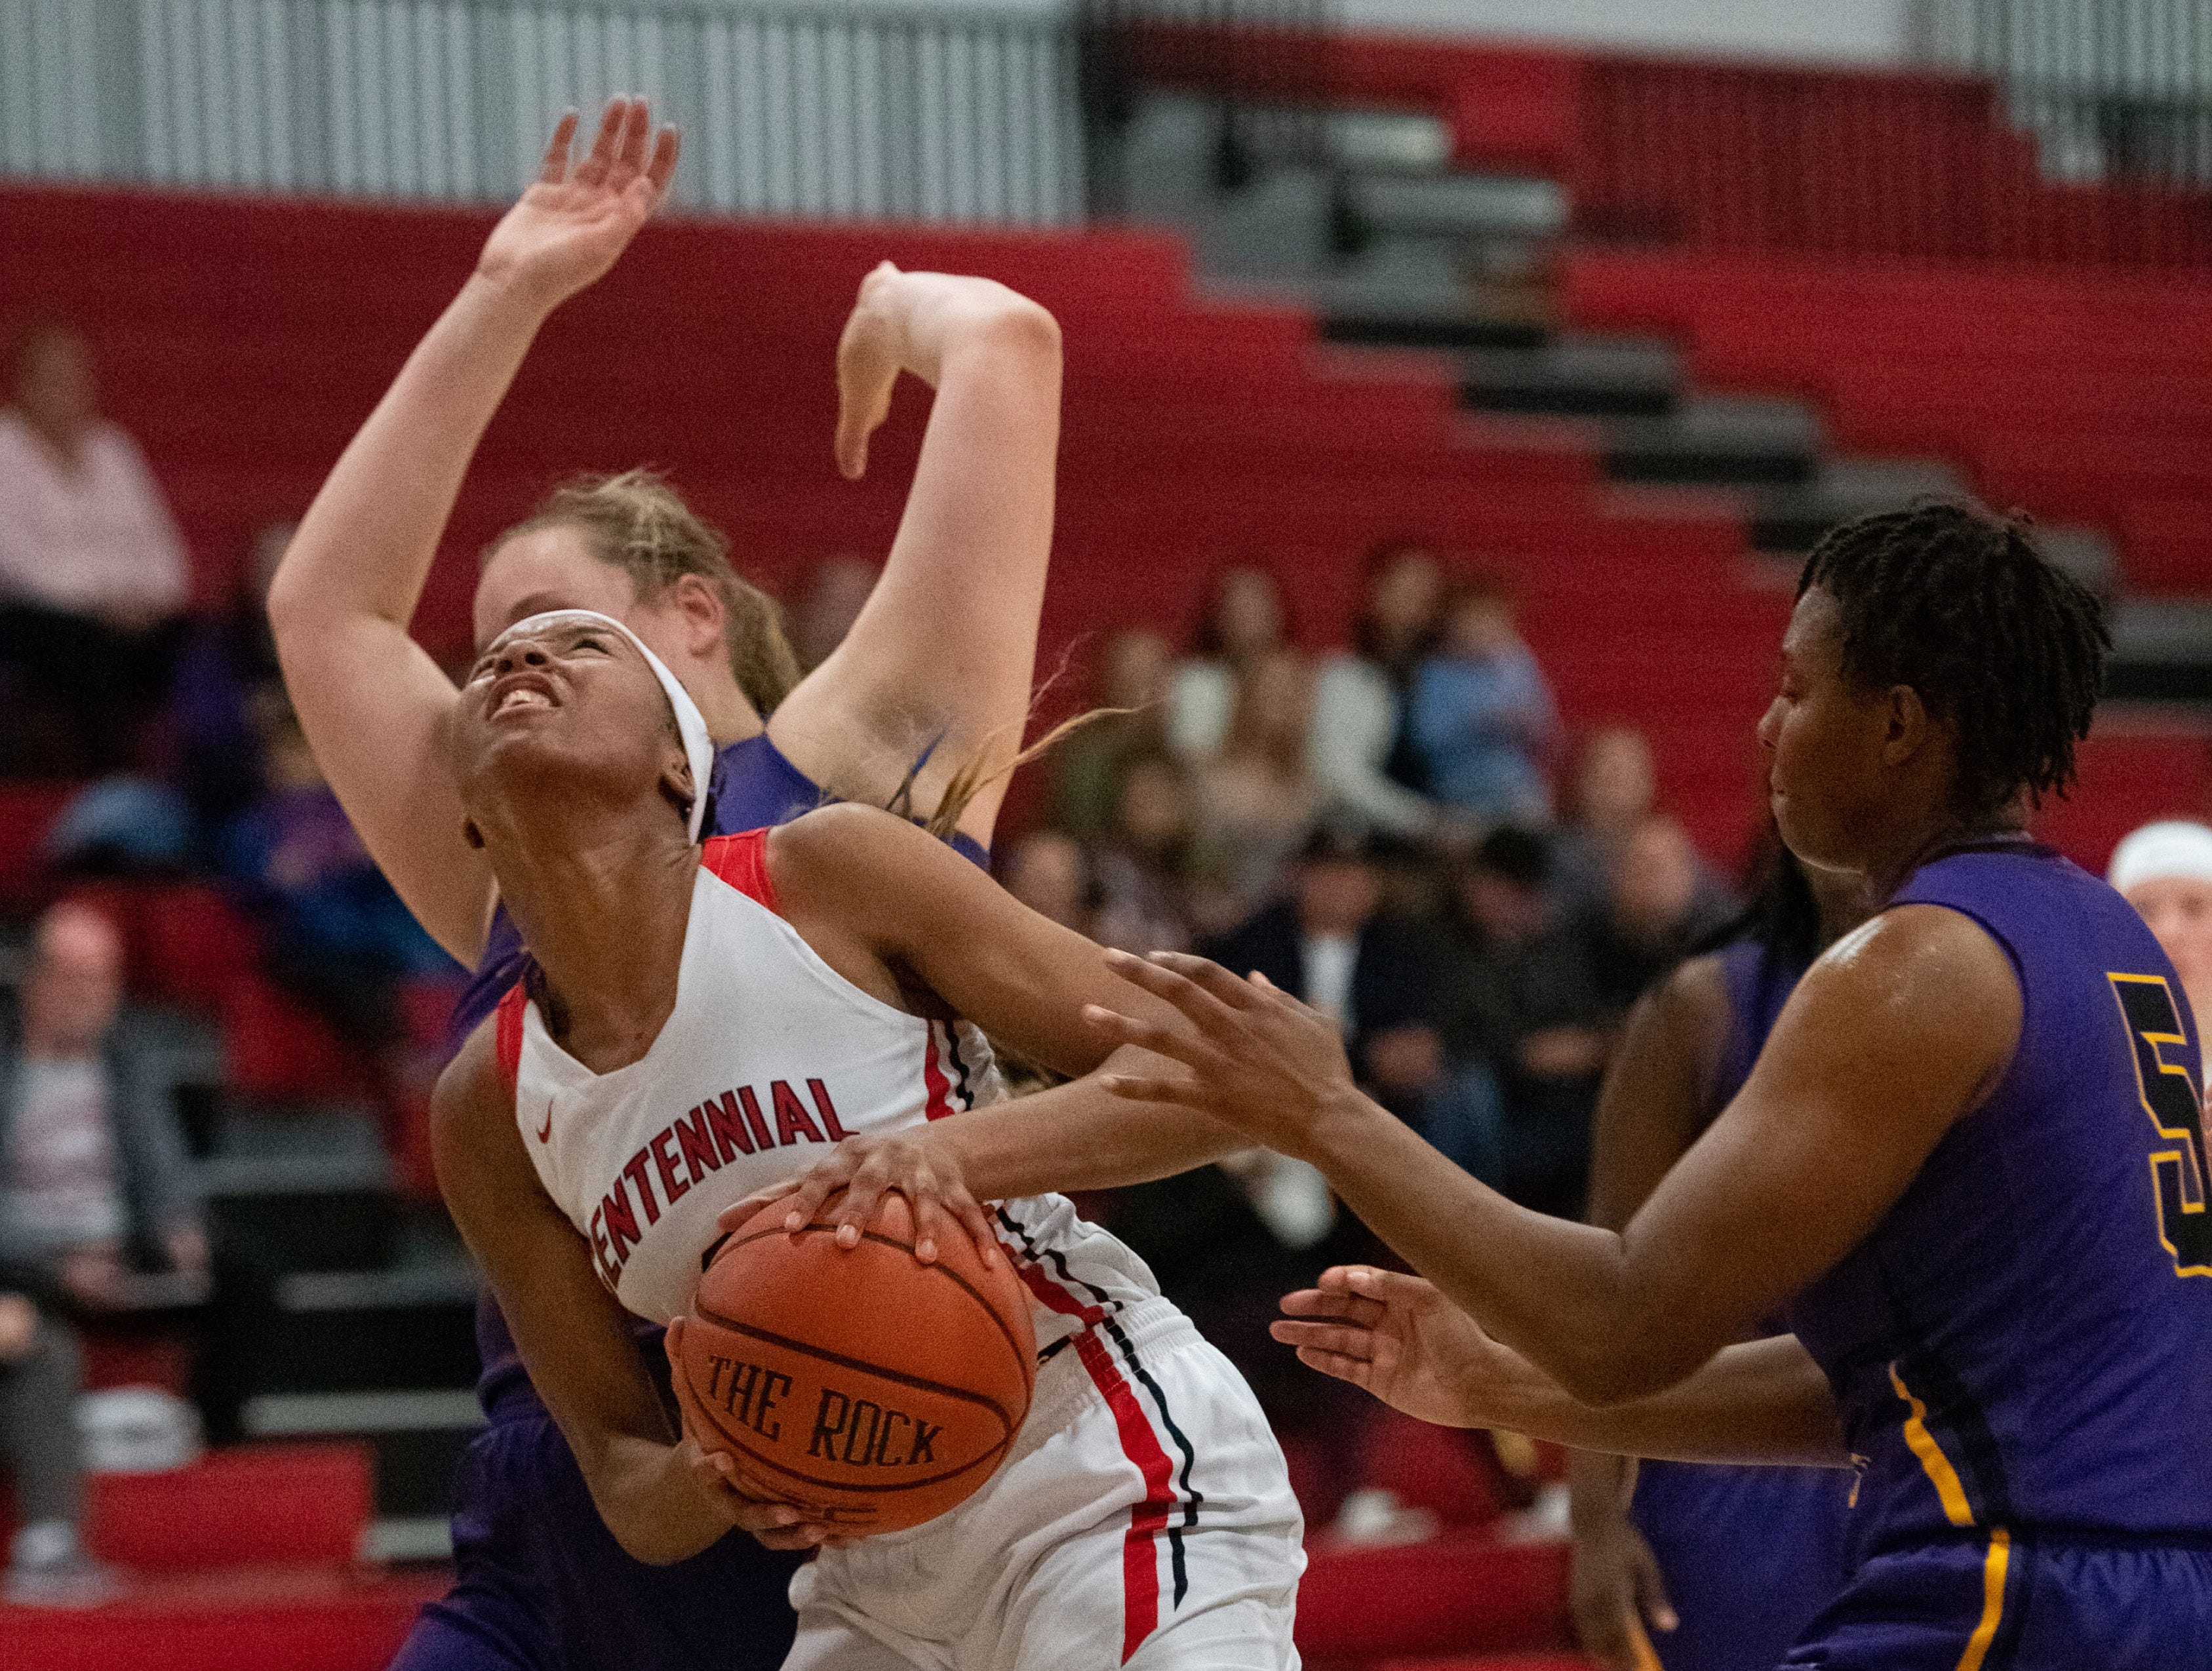 The high school girls basketball game between Centennial and Fort Pierce Central at Centennial High School on Friday, January 25, 2019 in Port St. Lucie.